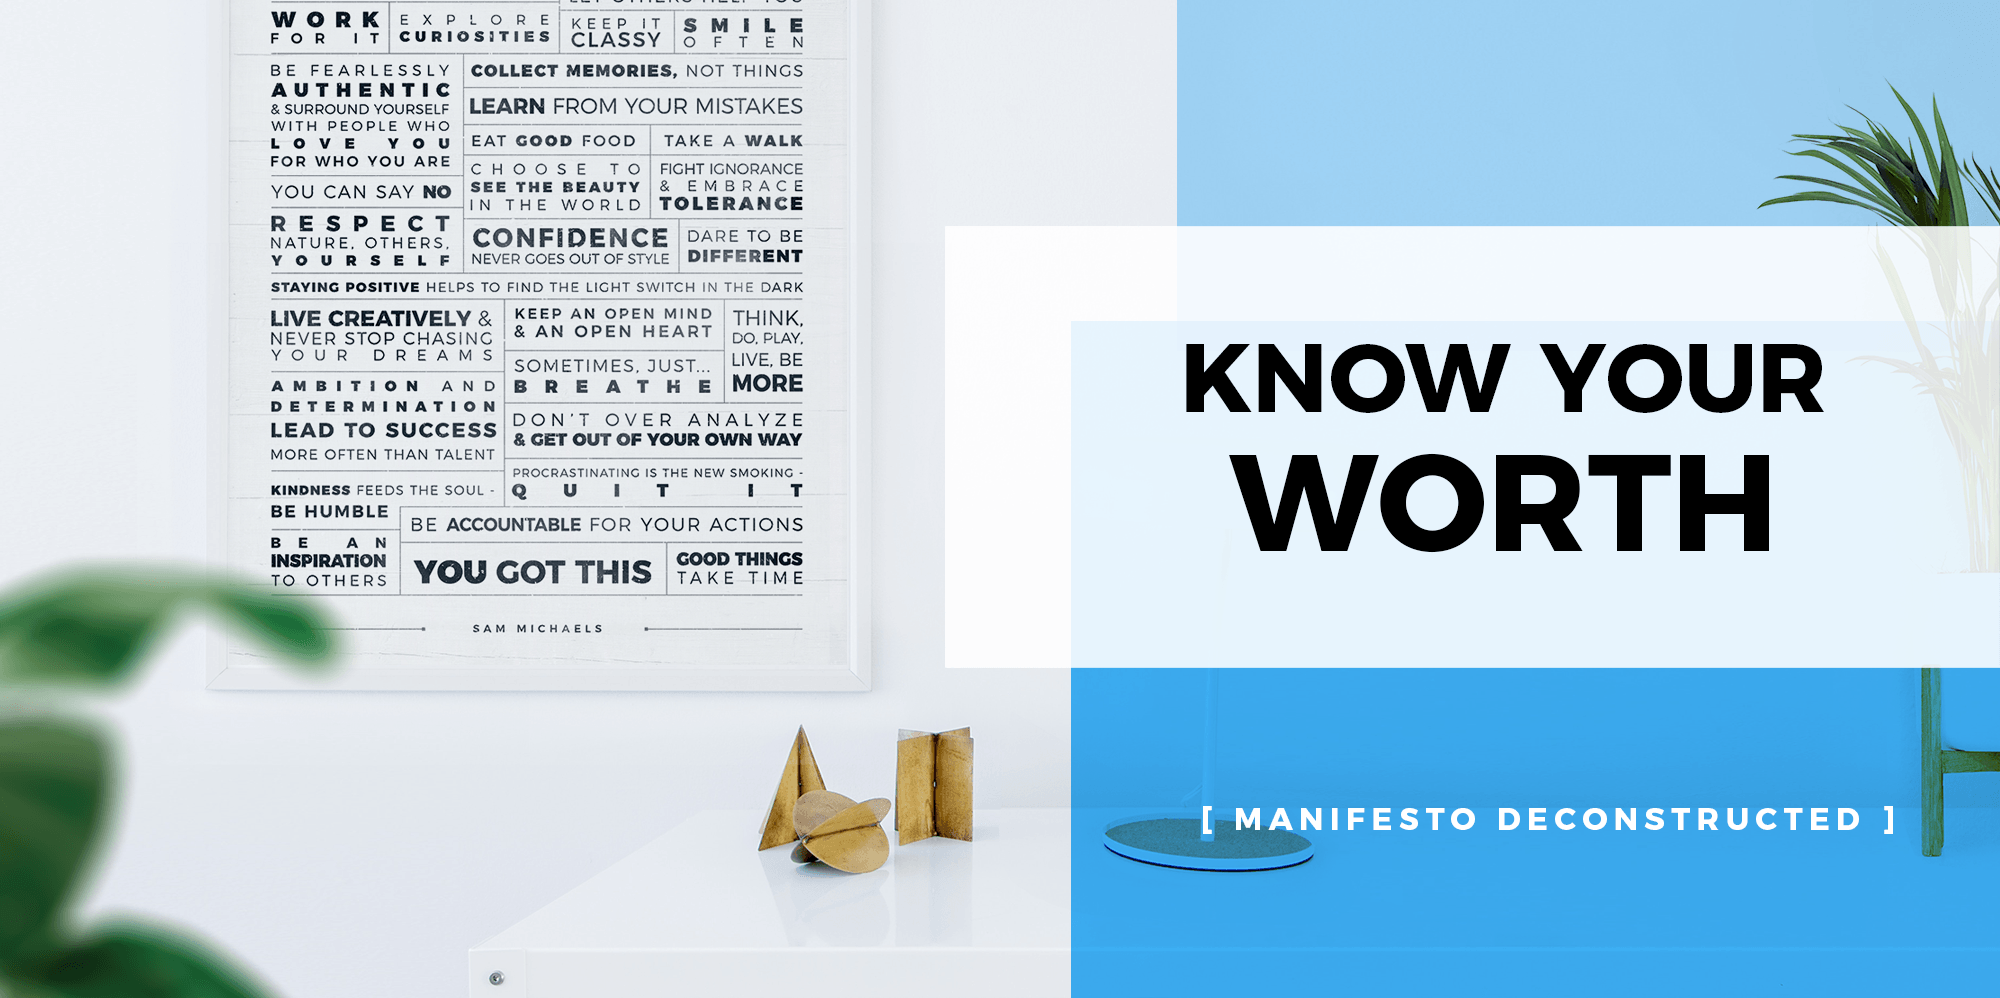 Know Your Worth - Manifesto Deconstructed